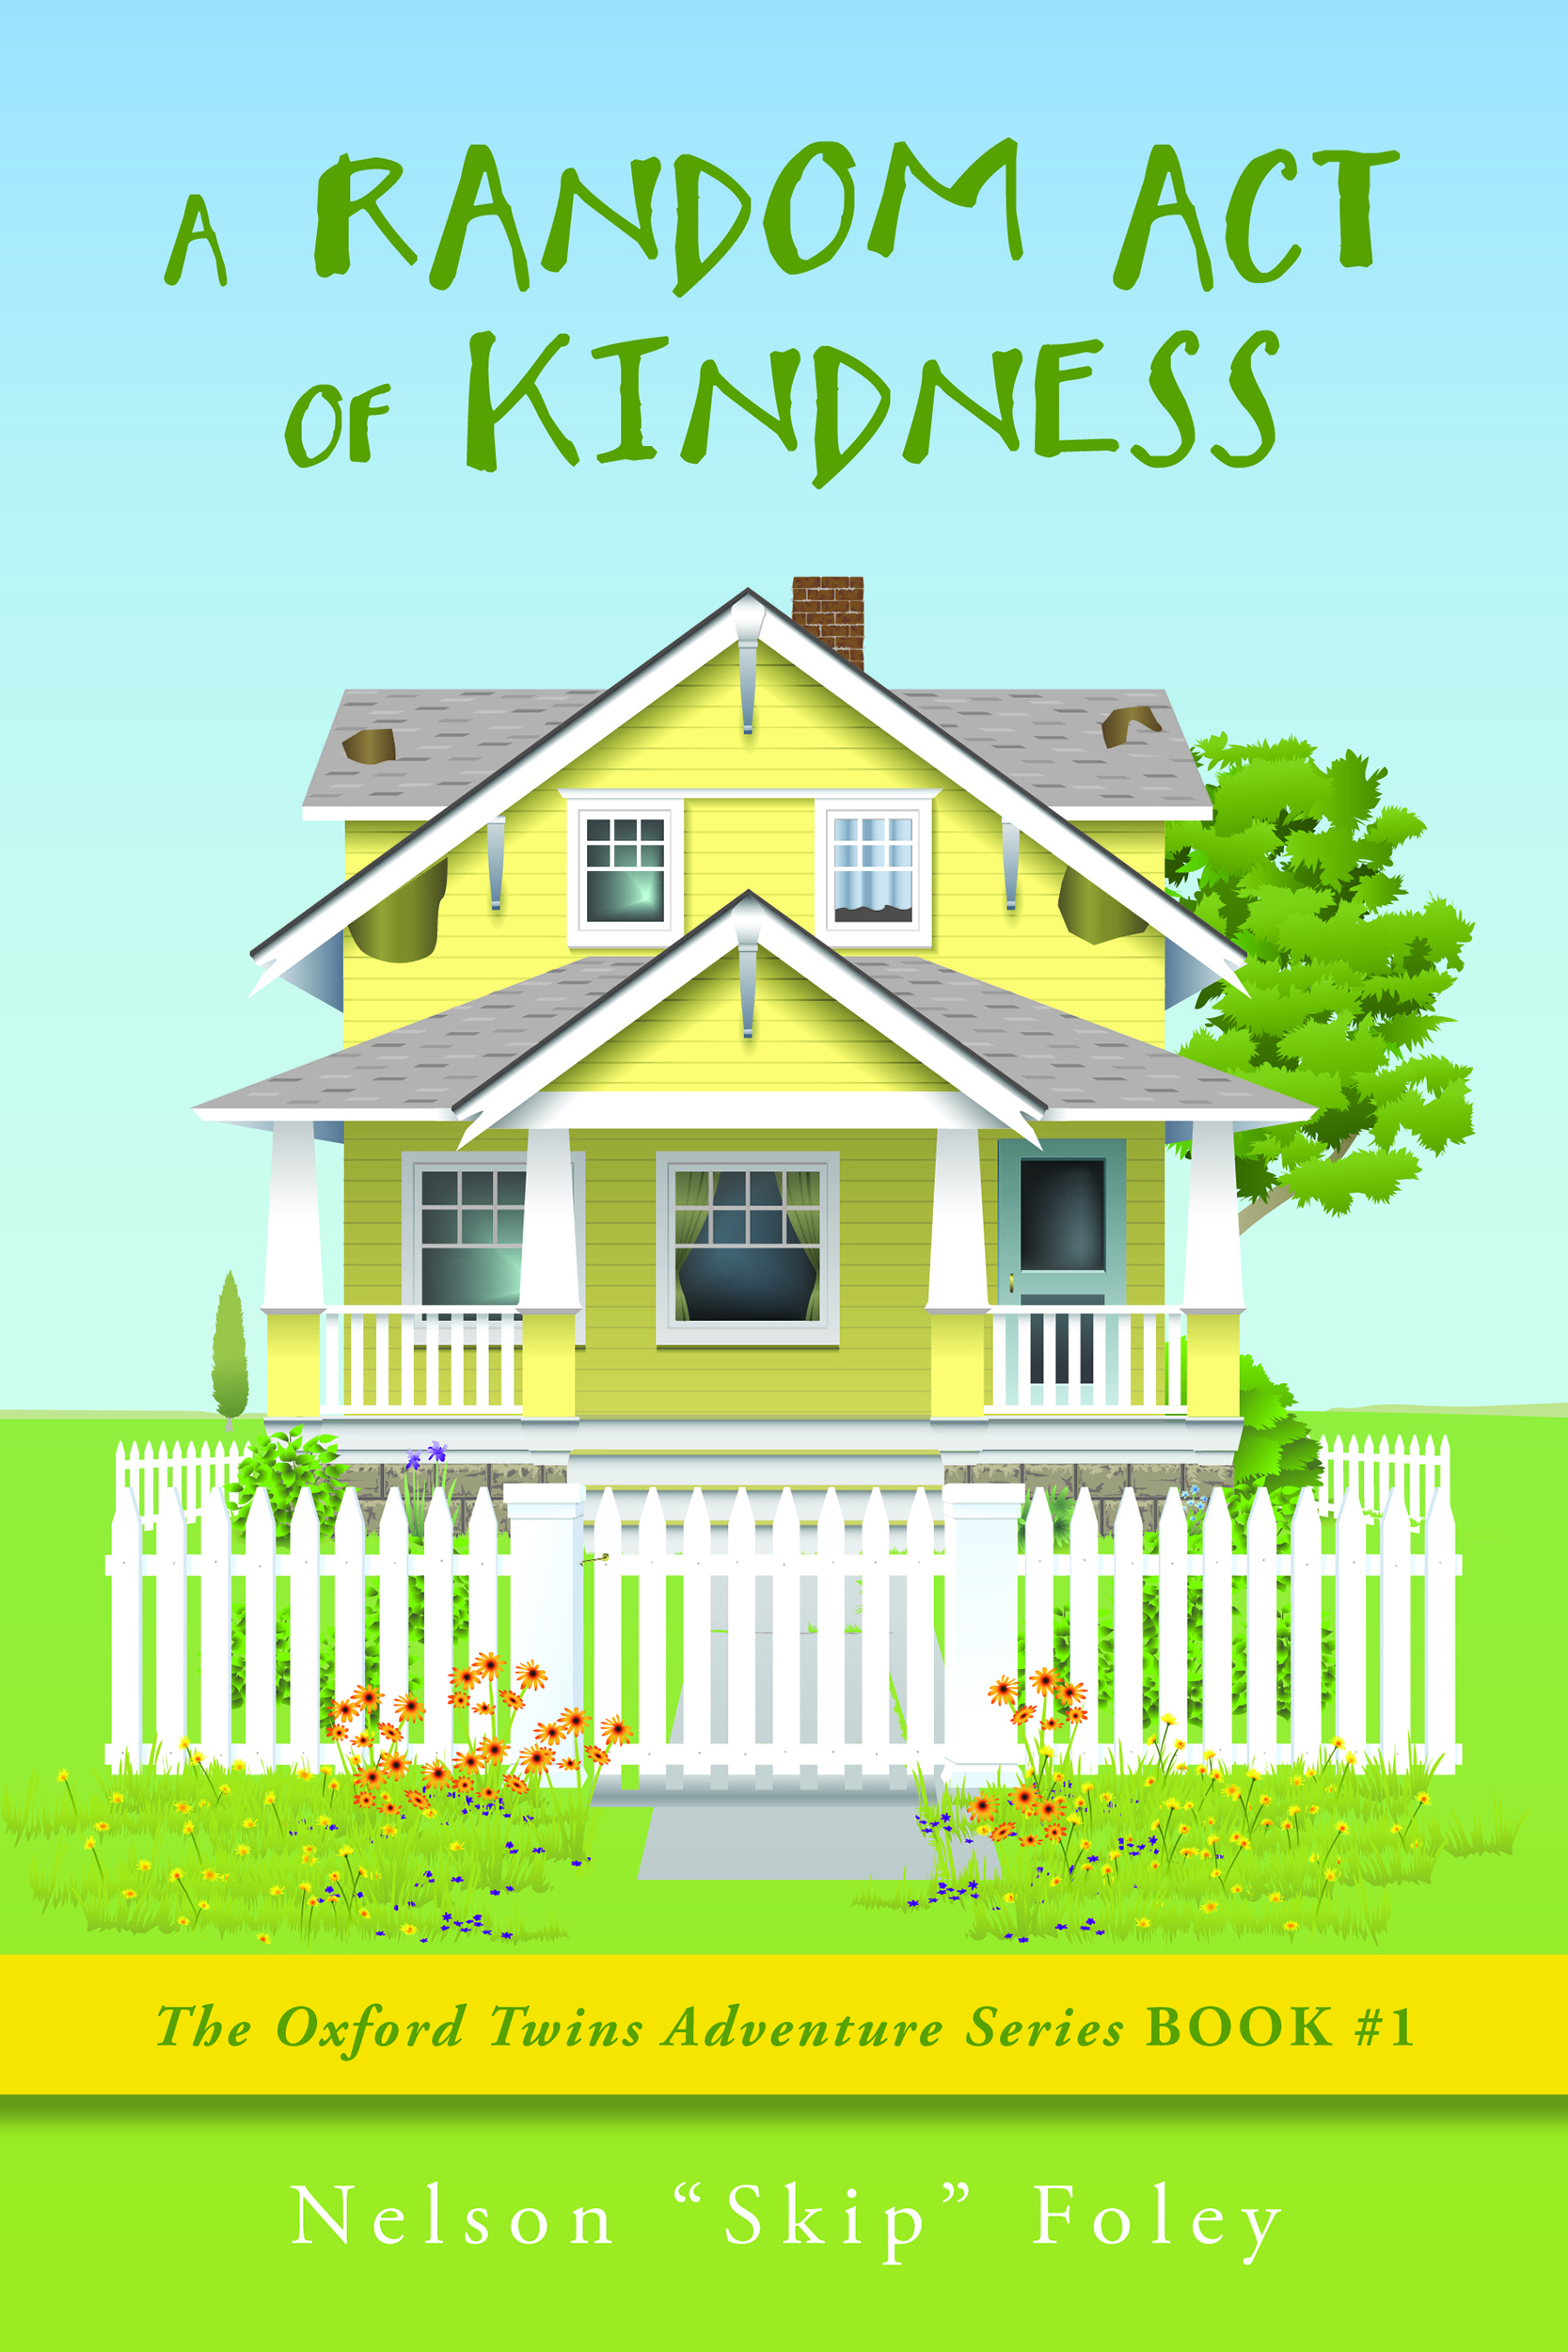 Image of book cover A Random Act of Kindness